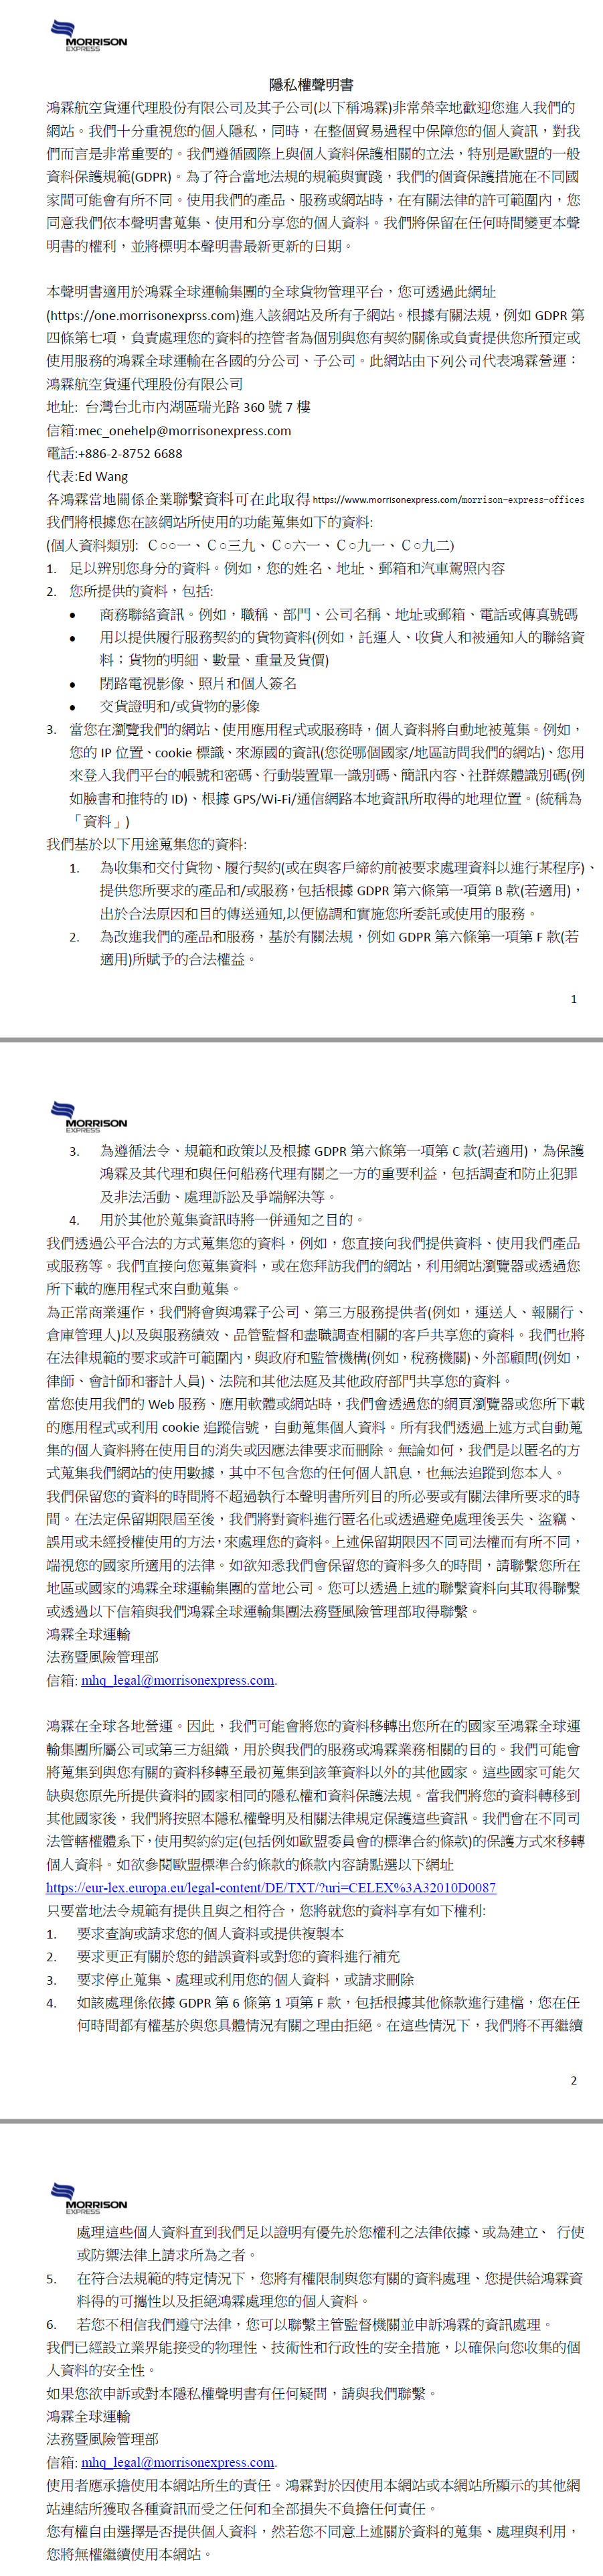 privacy-statement-chinese-02